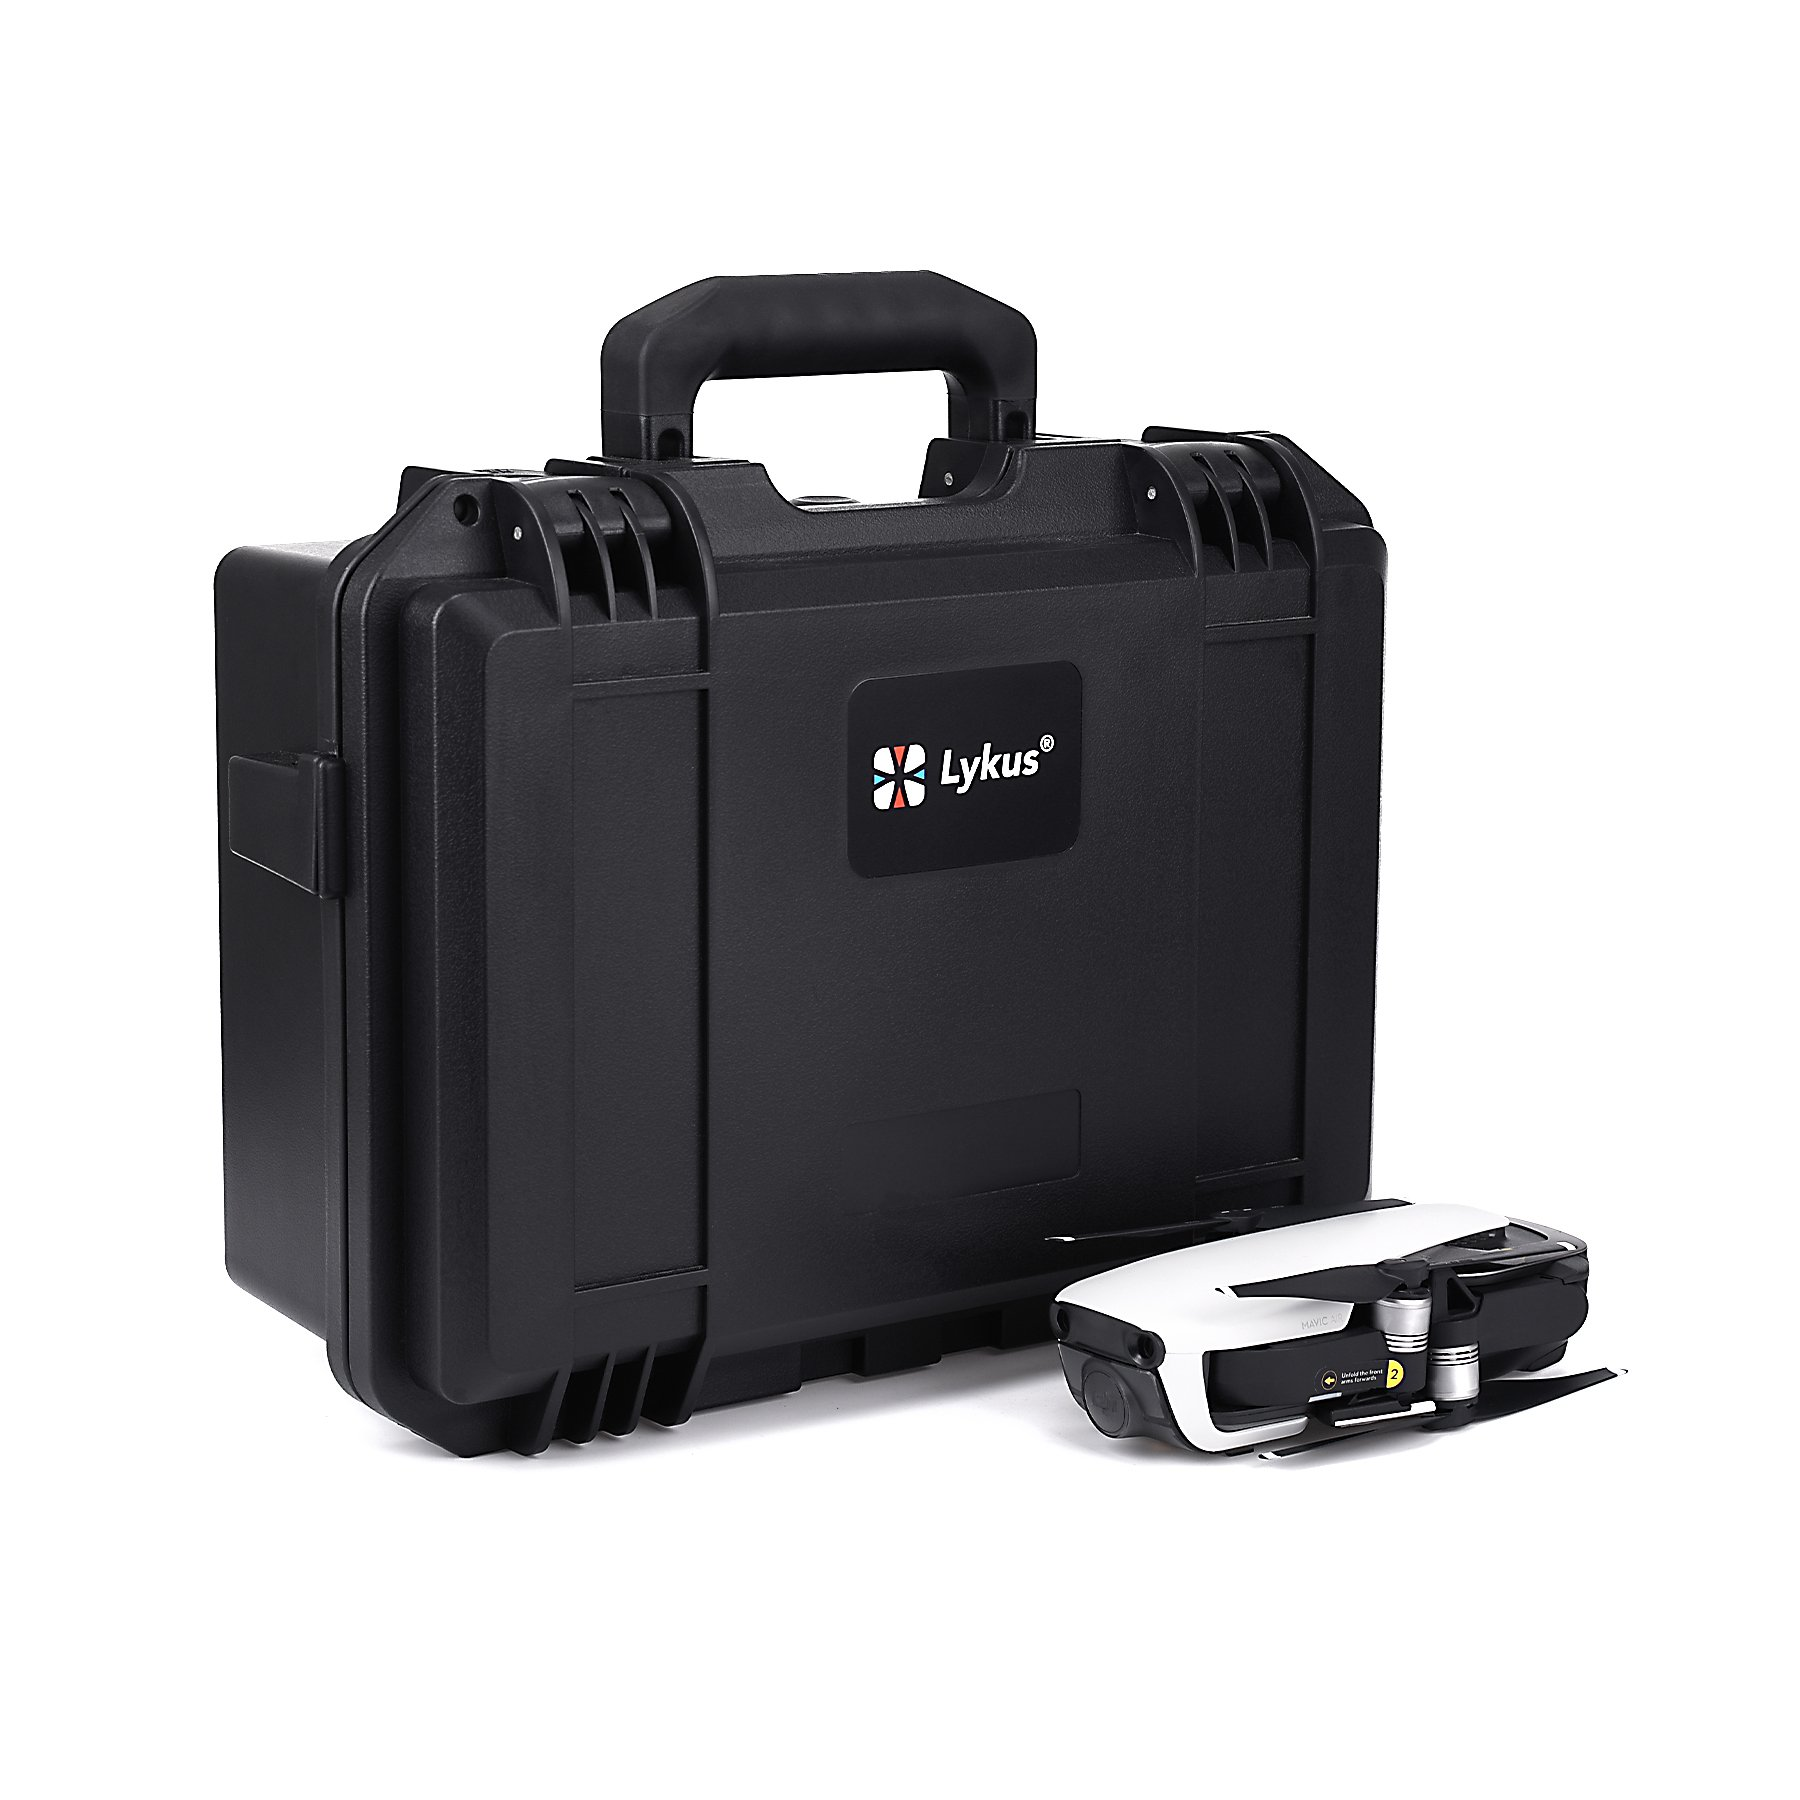 Lykus Titan MA100 Hard Case for DJI Mavic Air, Perfectly Fit DJI Mavic Air Fly More Combo and More Items, Storage Bag Included for Spare Parts